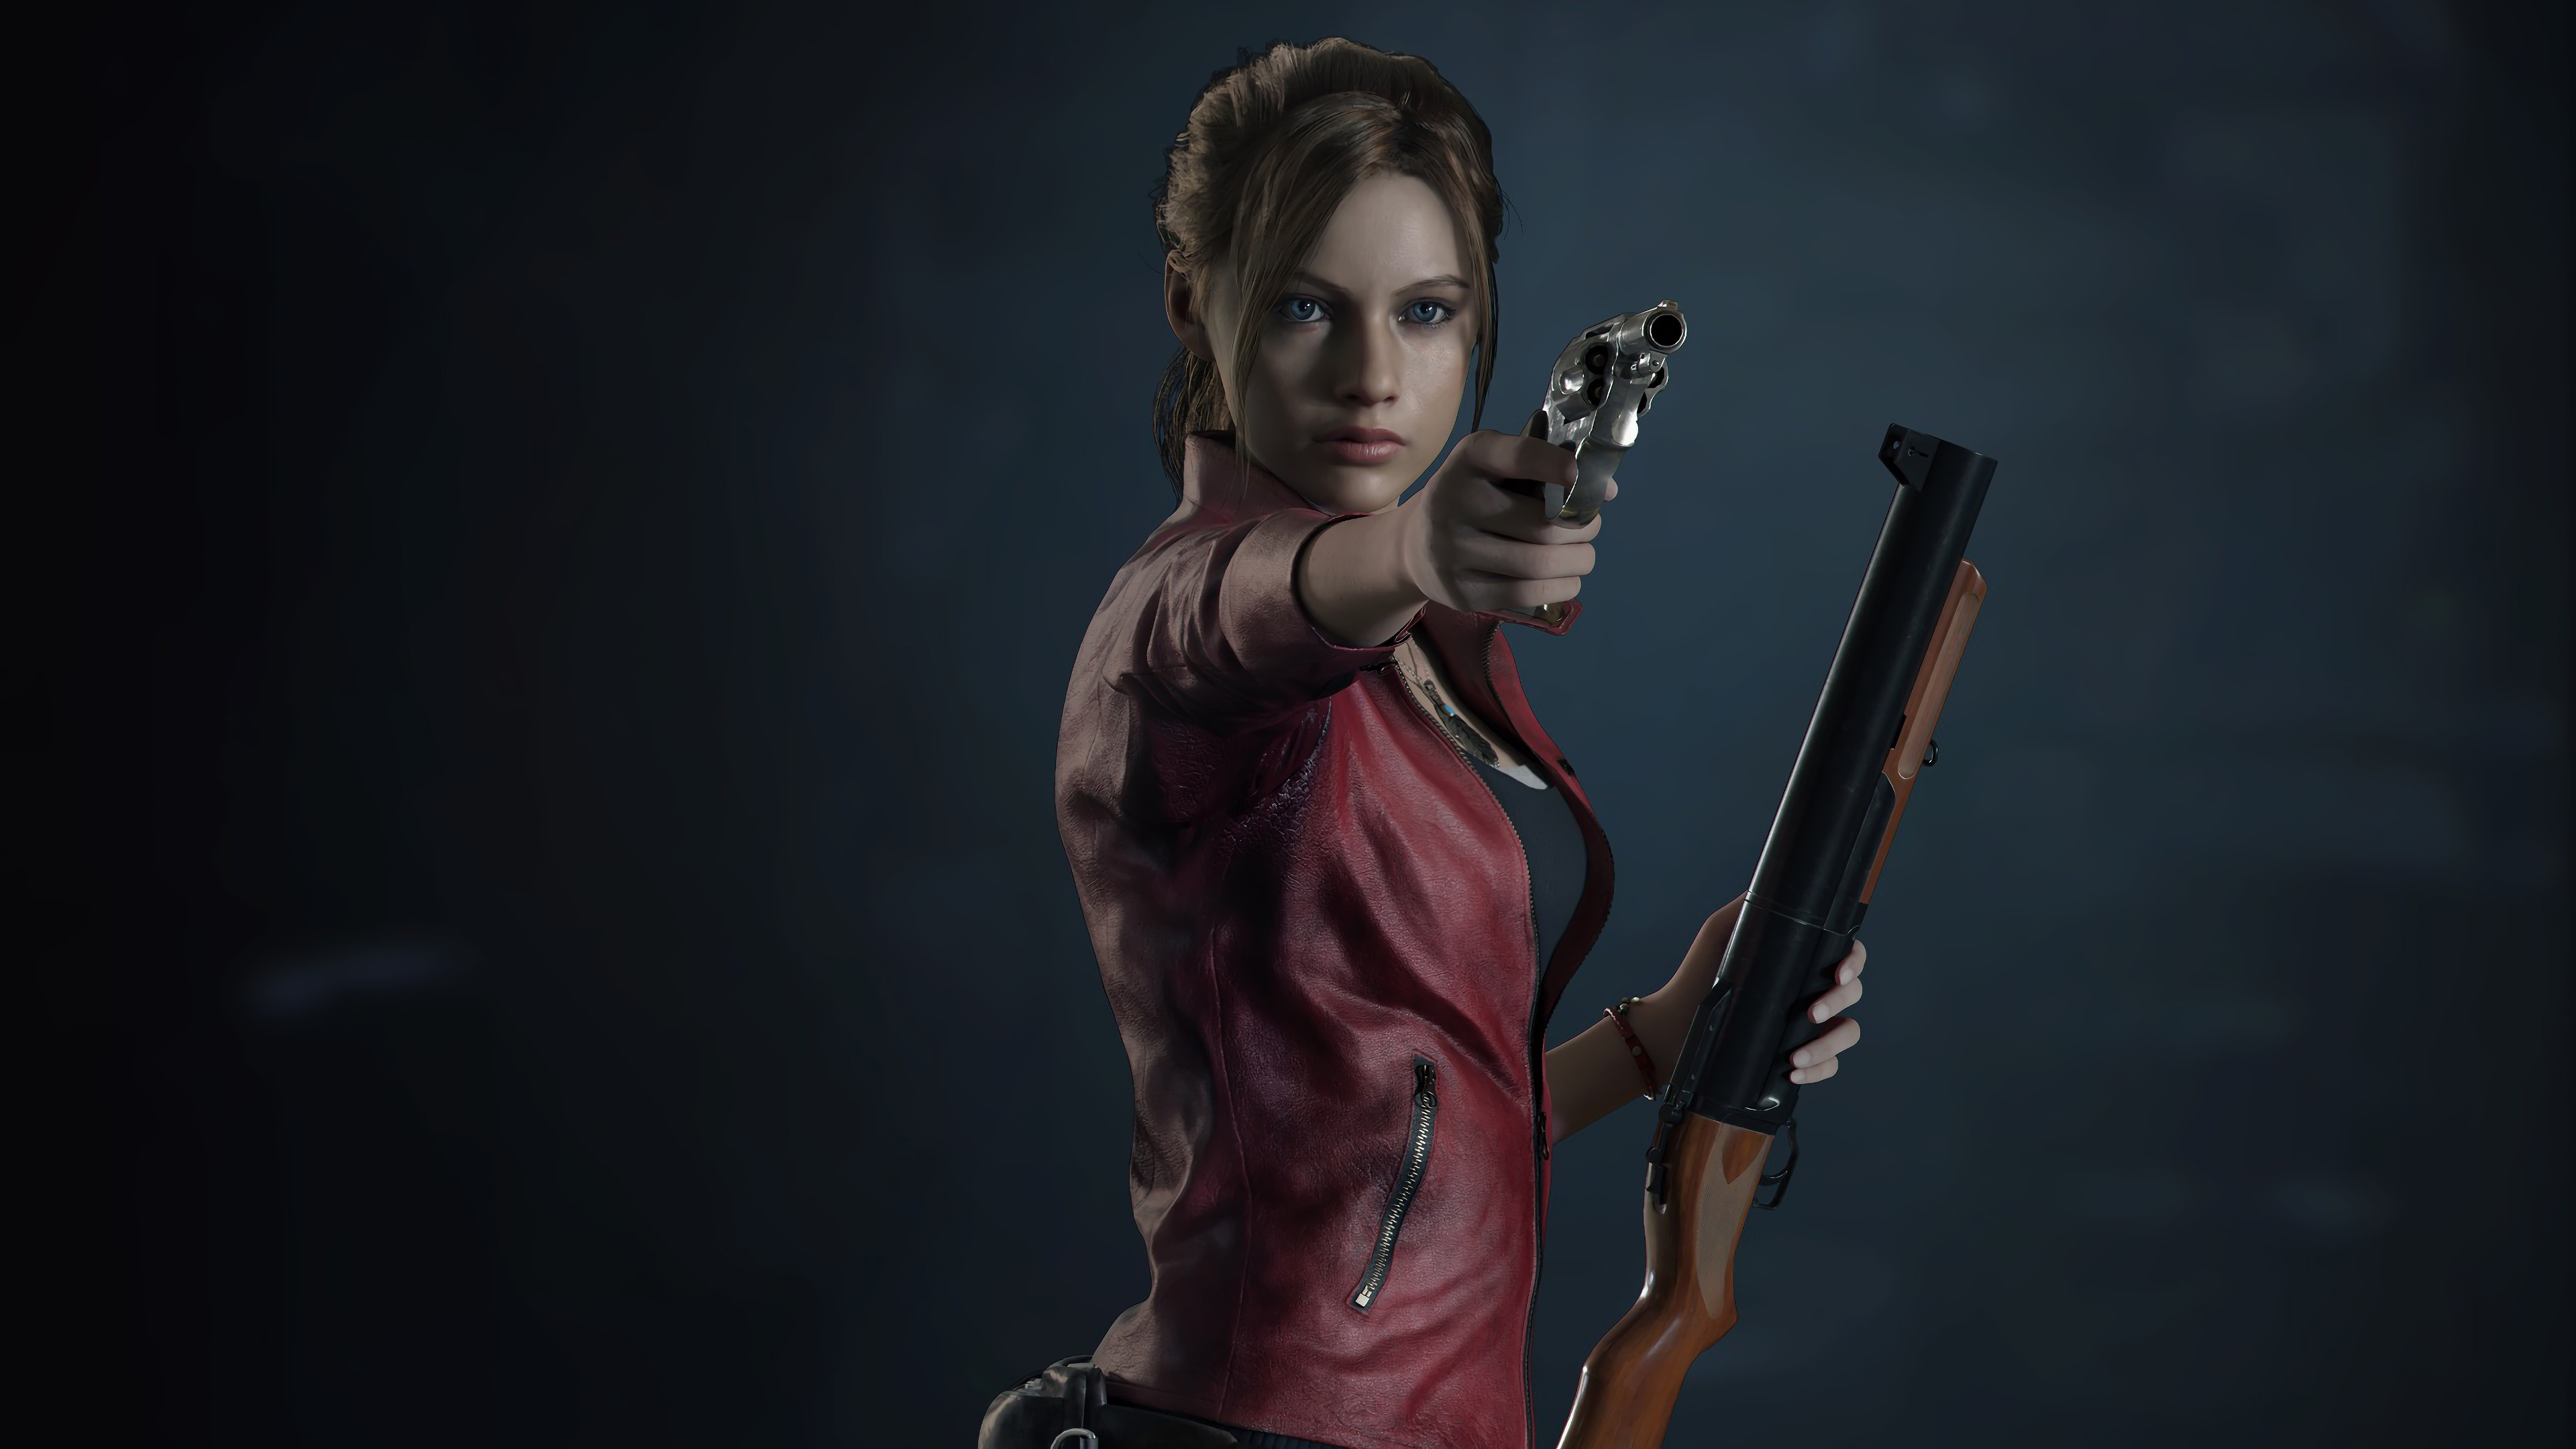 Res: 3840x2160, Resident Evil 2 (2019) Claire Redfield 4k Ultra HD Wallpaper | Hintergrund  |  | ID:984036 - Wallpaper Abyss